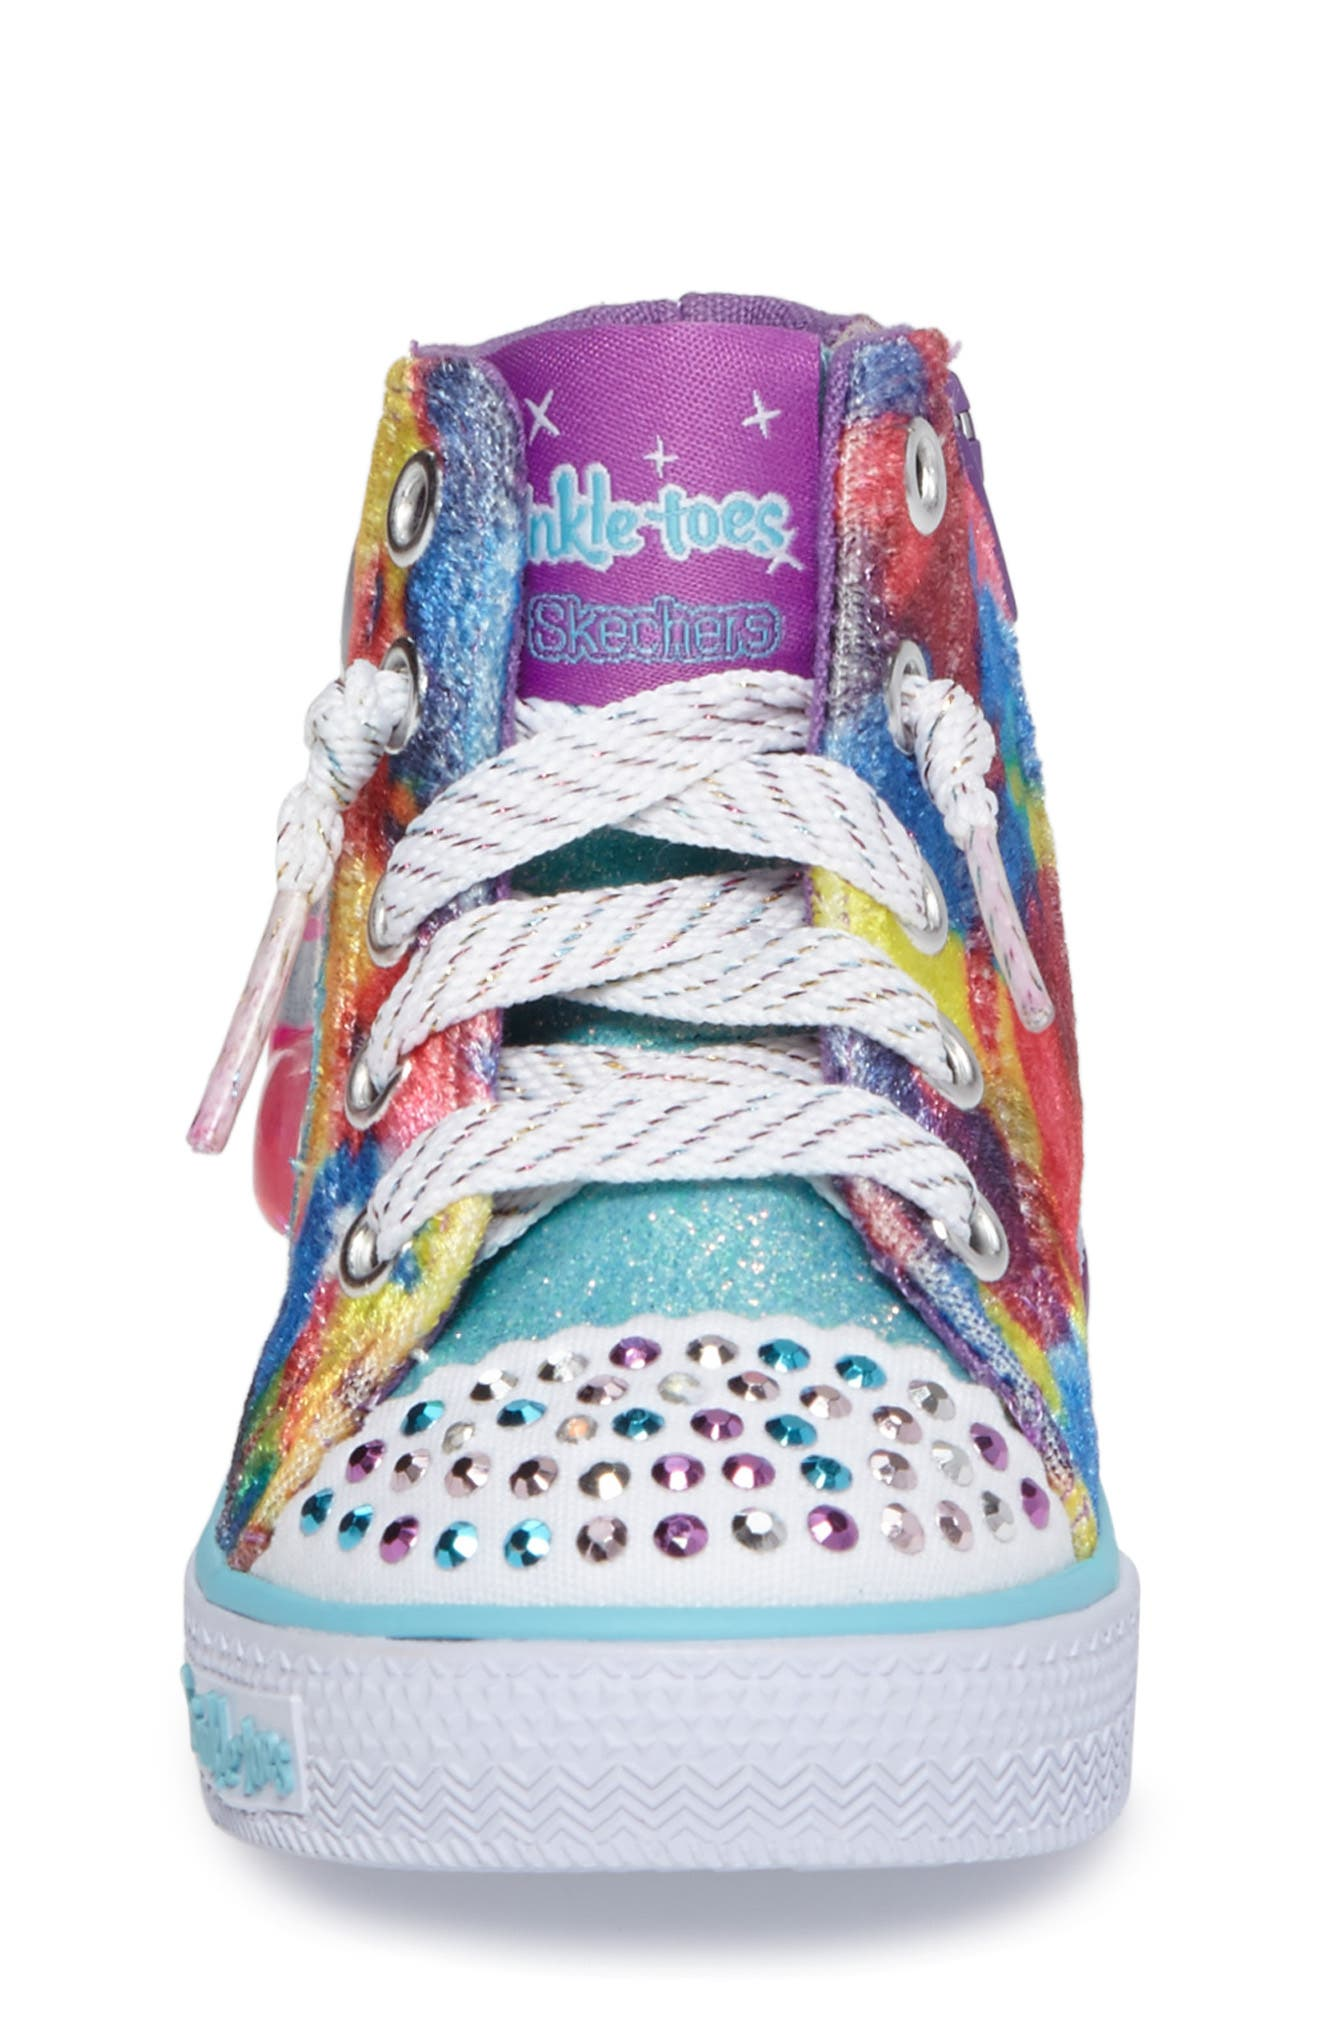 Twinkle Toes Shuffles Light-Up High Top Sneaker,                             Alternate thumbnail 7, color,